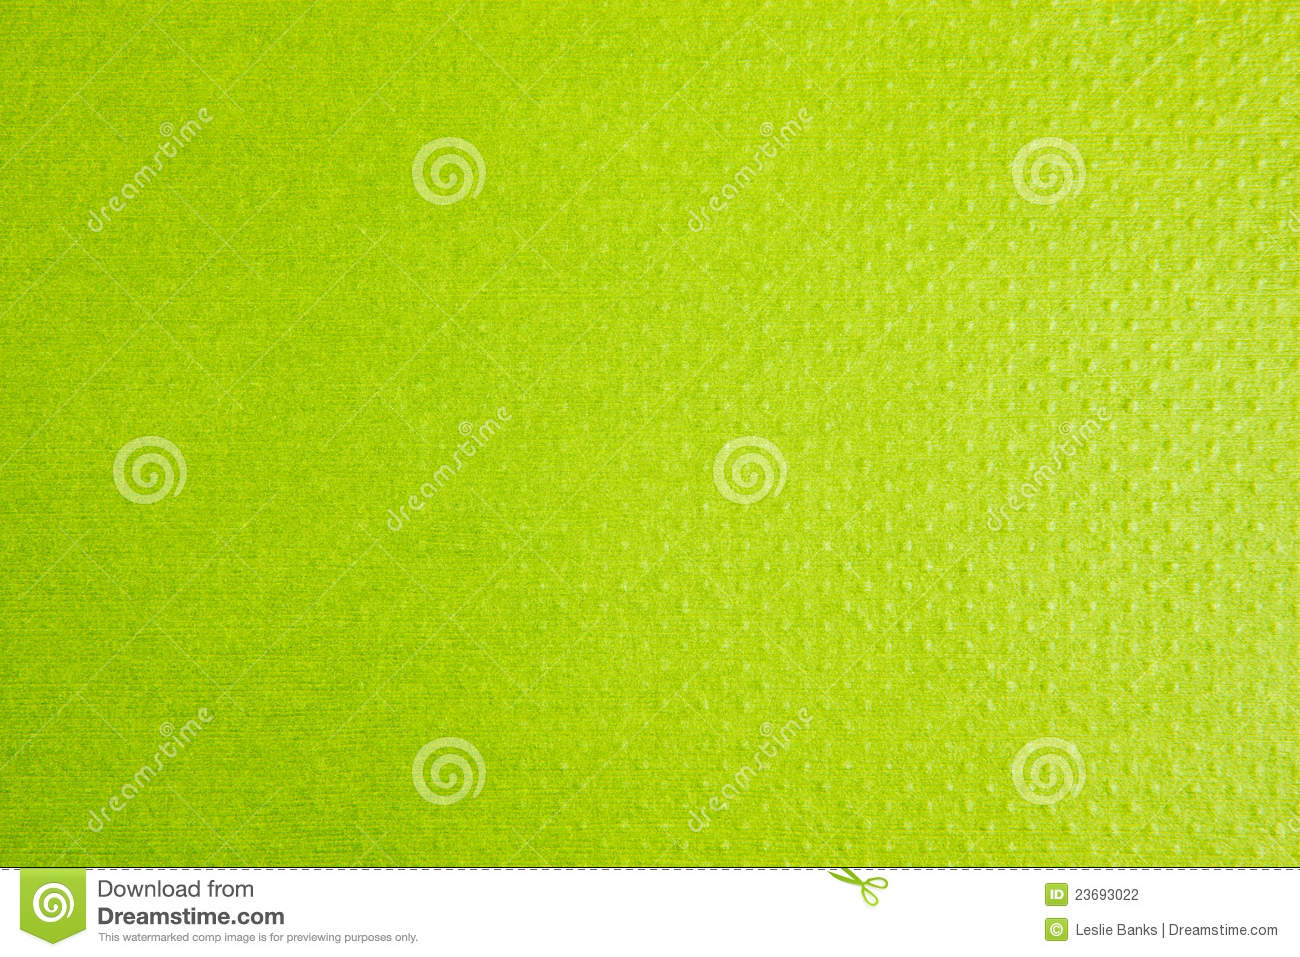 Green Paper Texture Background Stock Photo - Image: 23693022